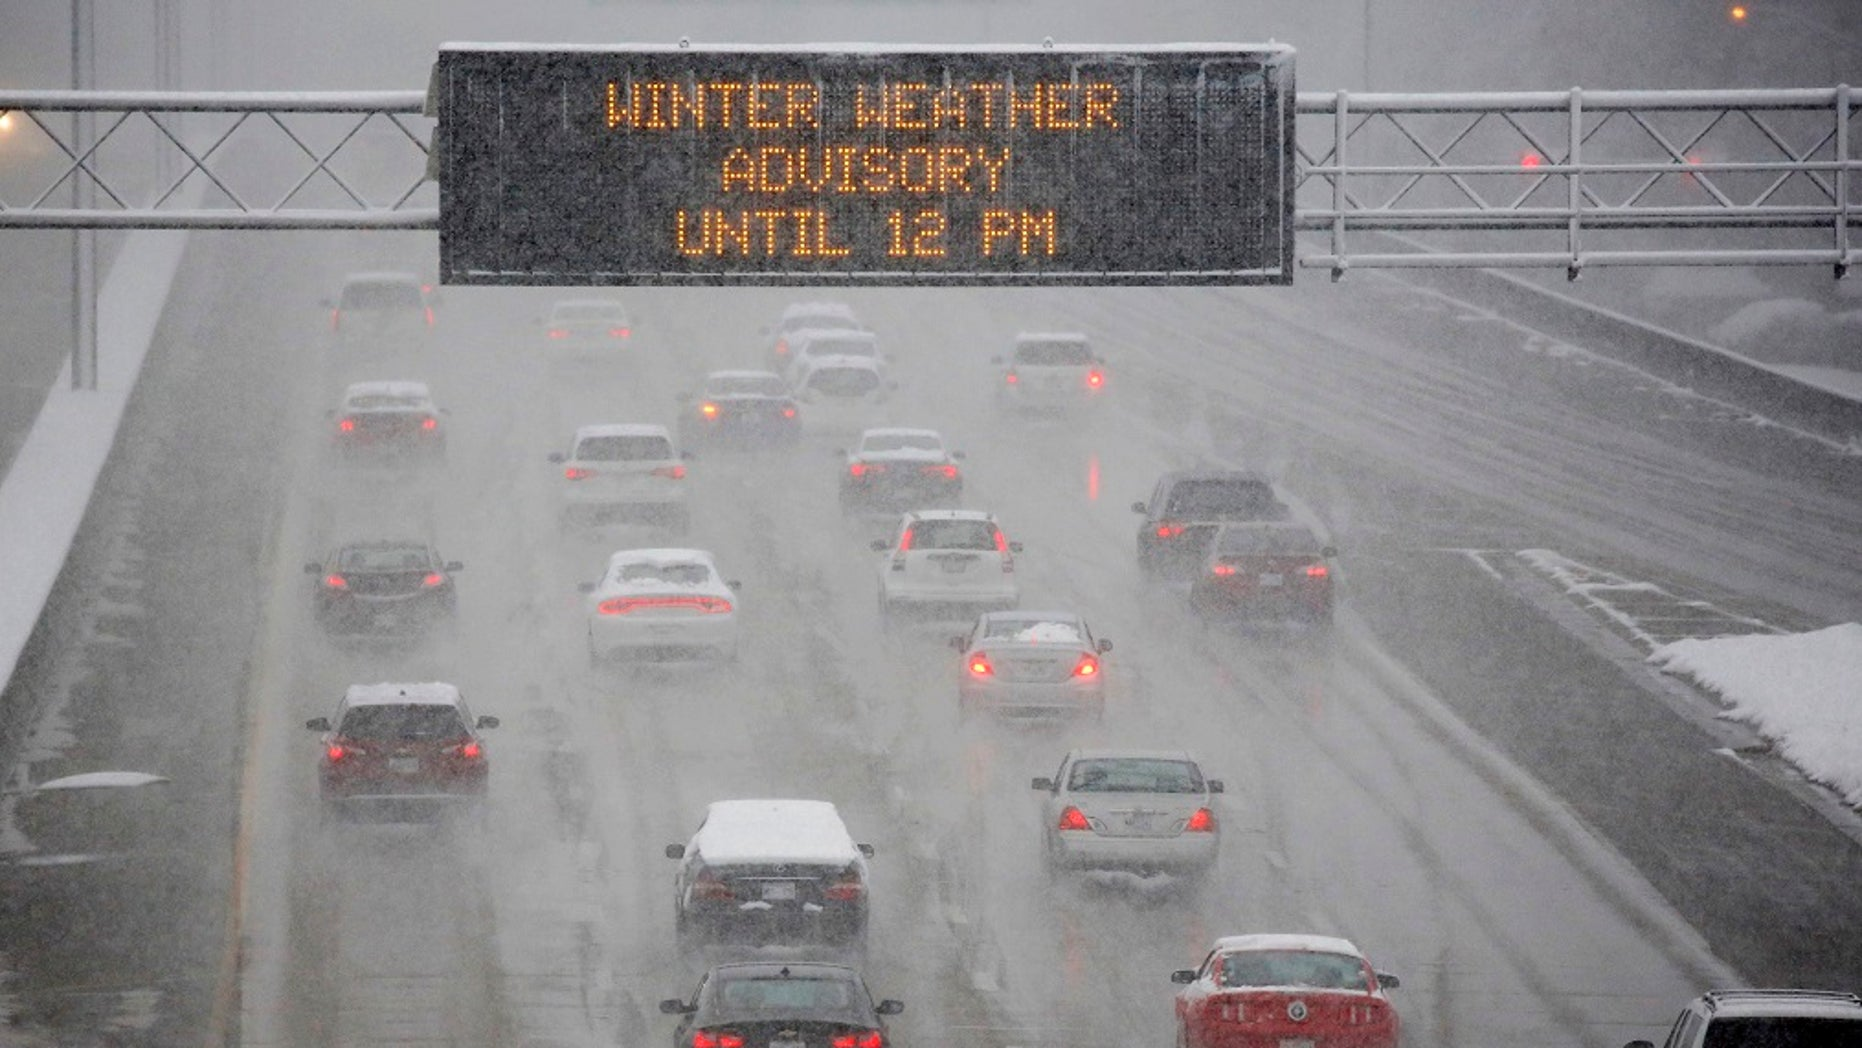 The Northeast braces for Winter Storm Benji after the storm hit the South with snow.